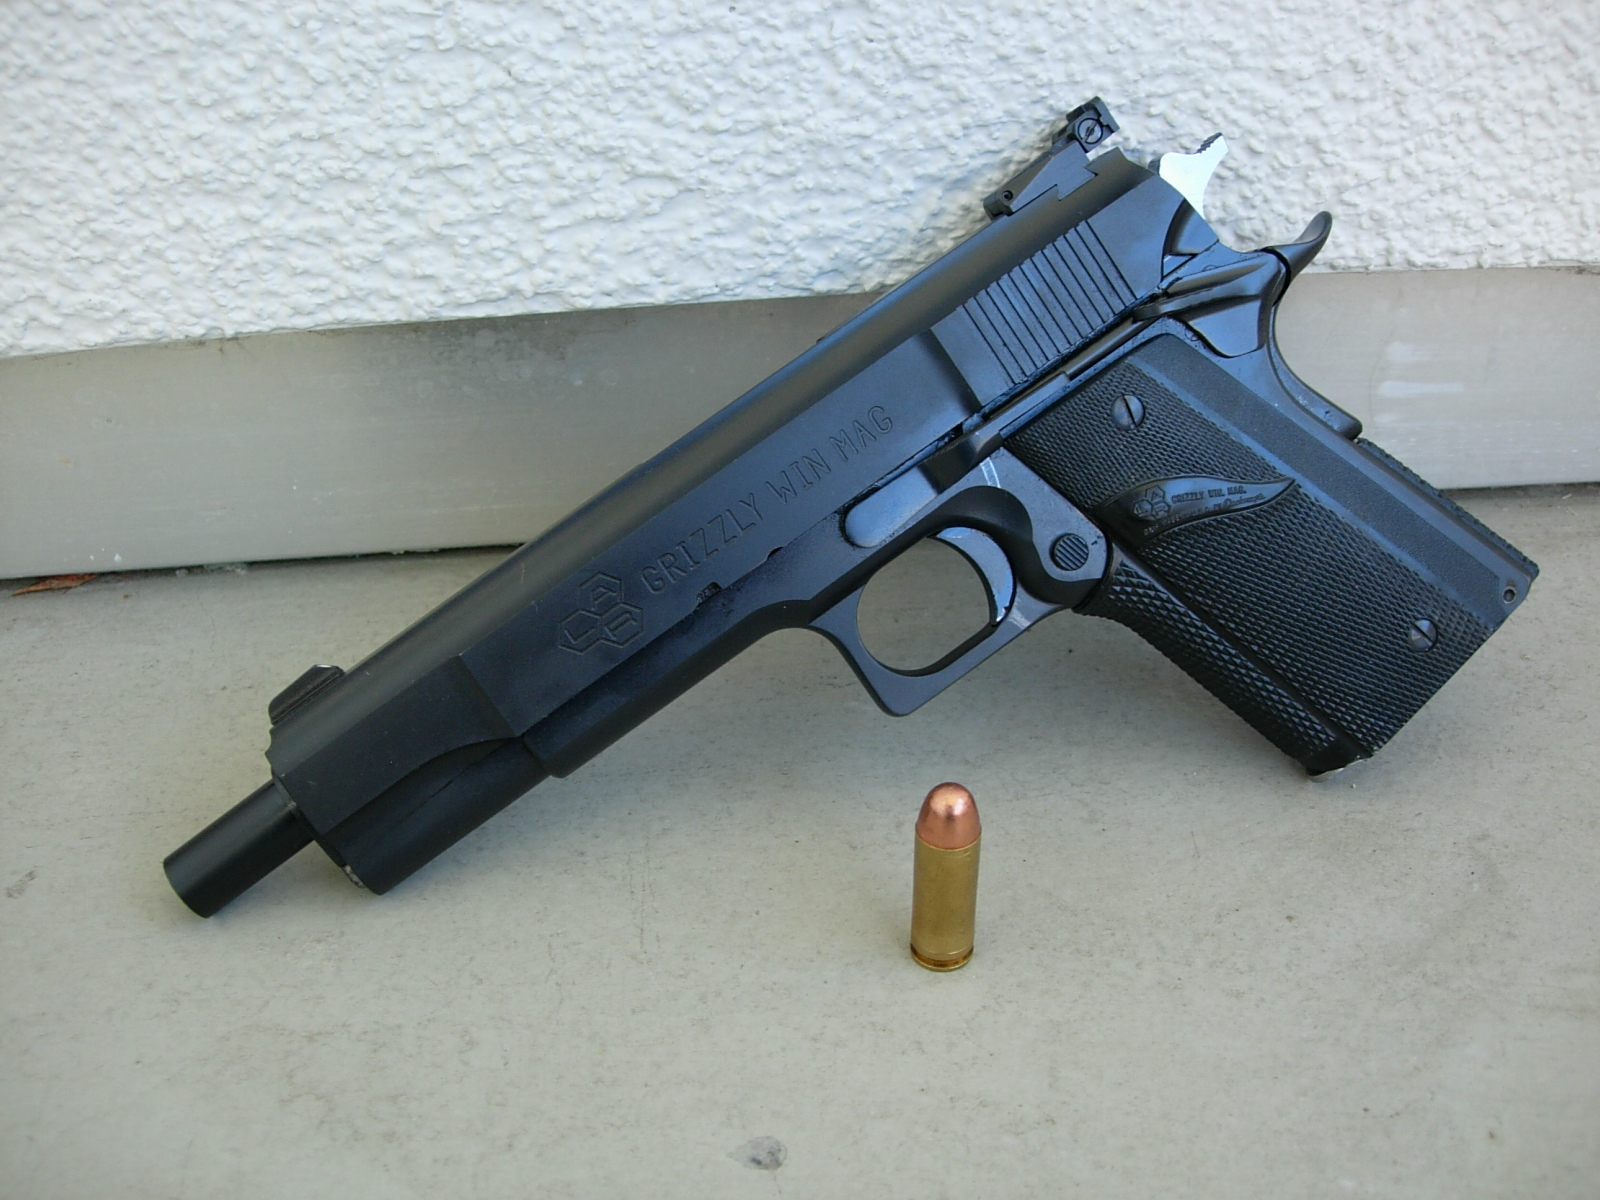 LAR Grizzly Win Mag - Wikipedia